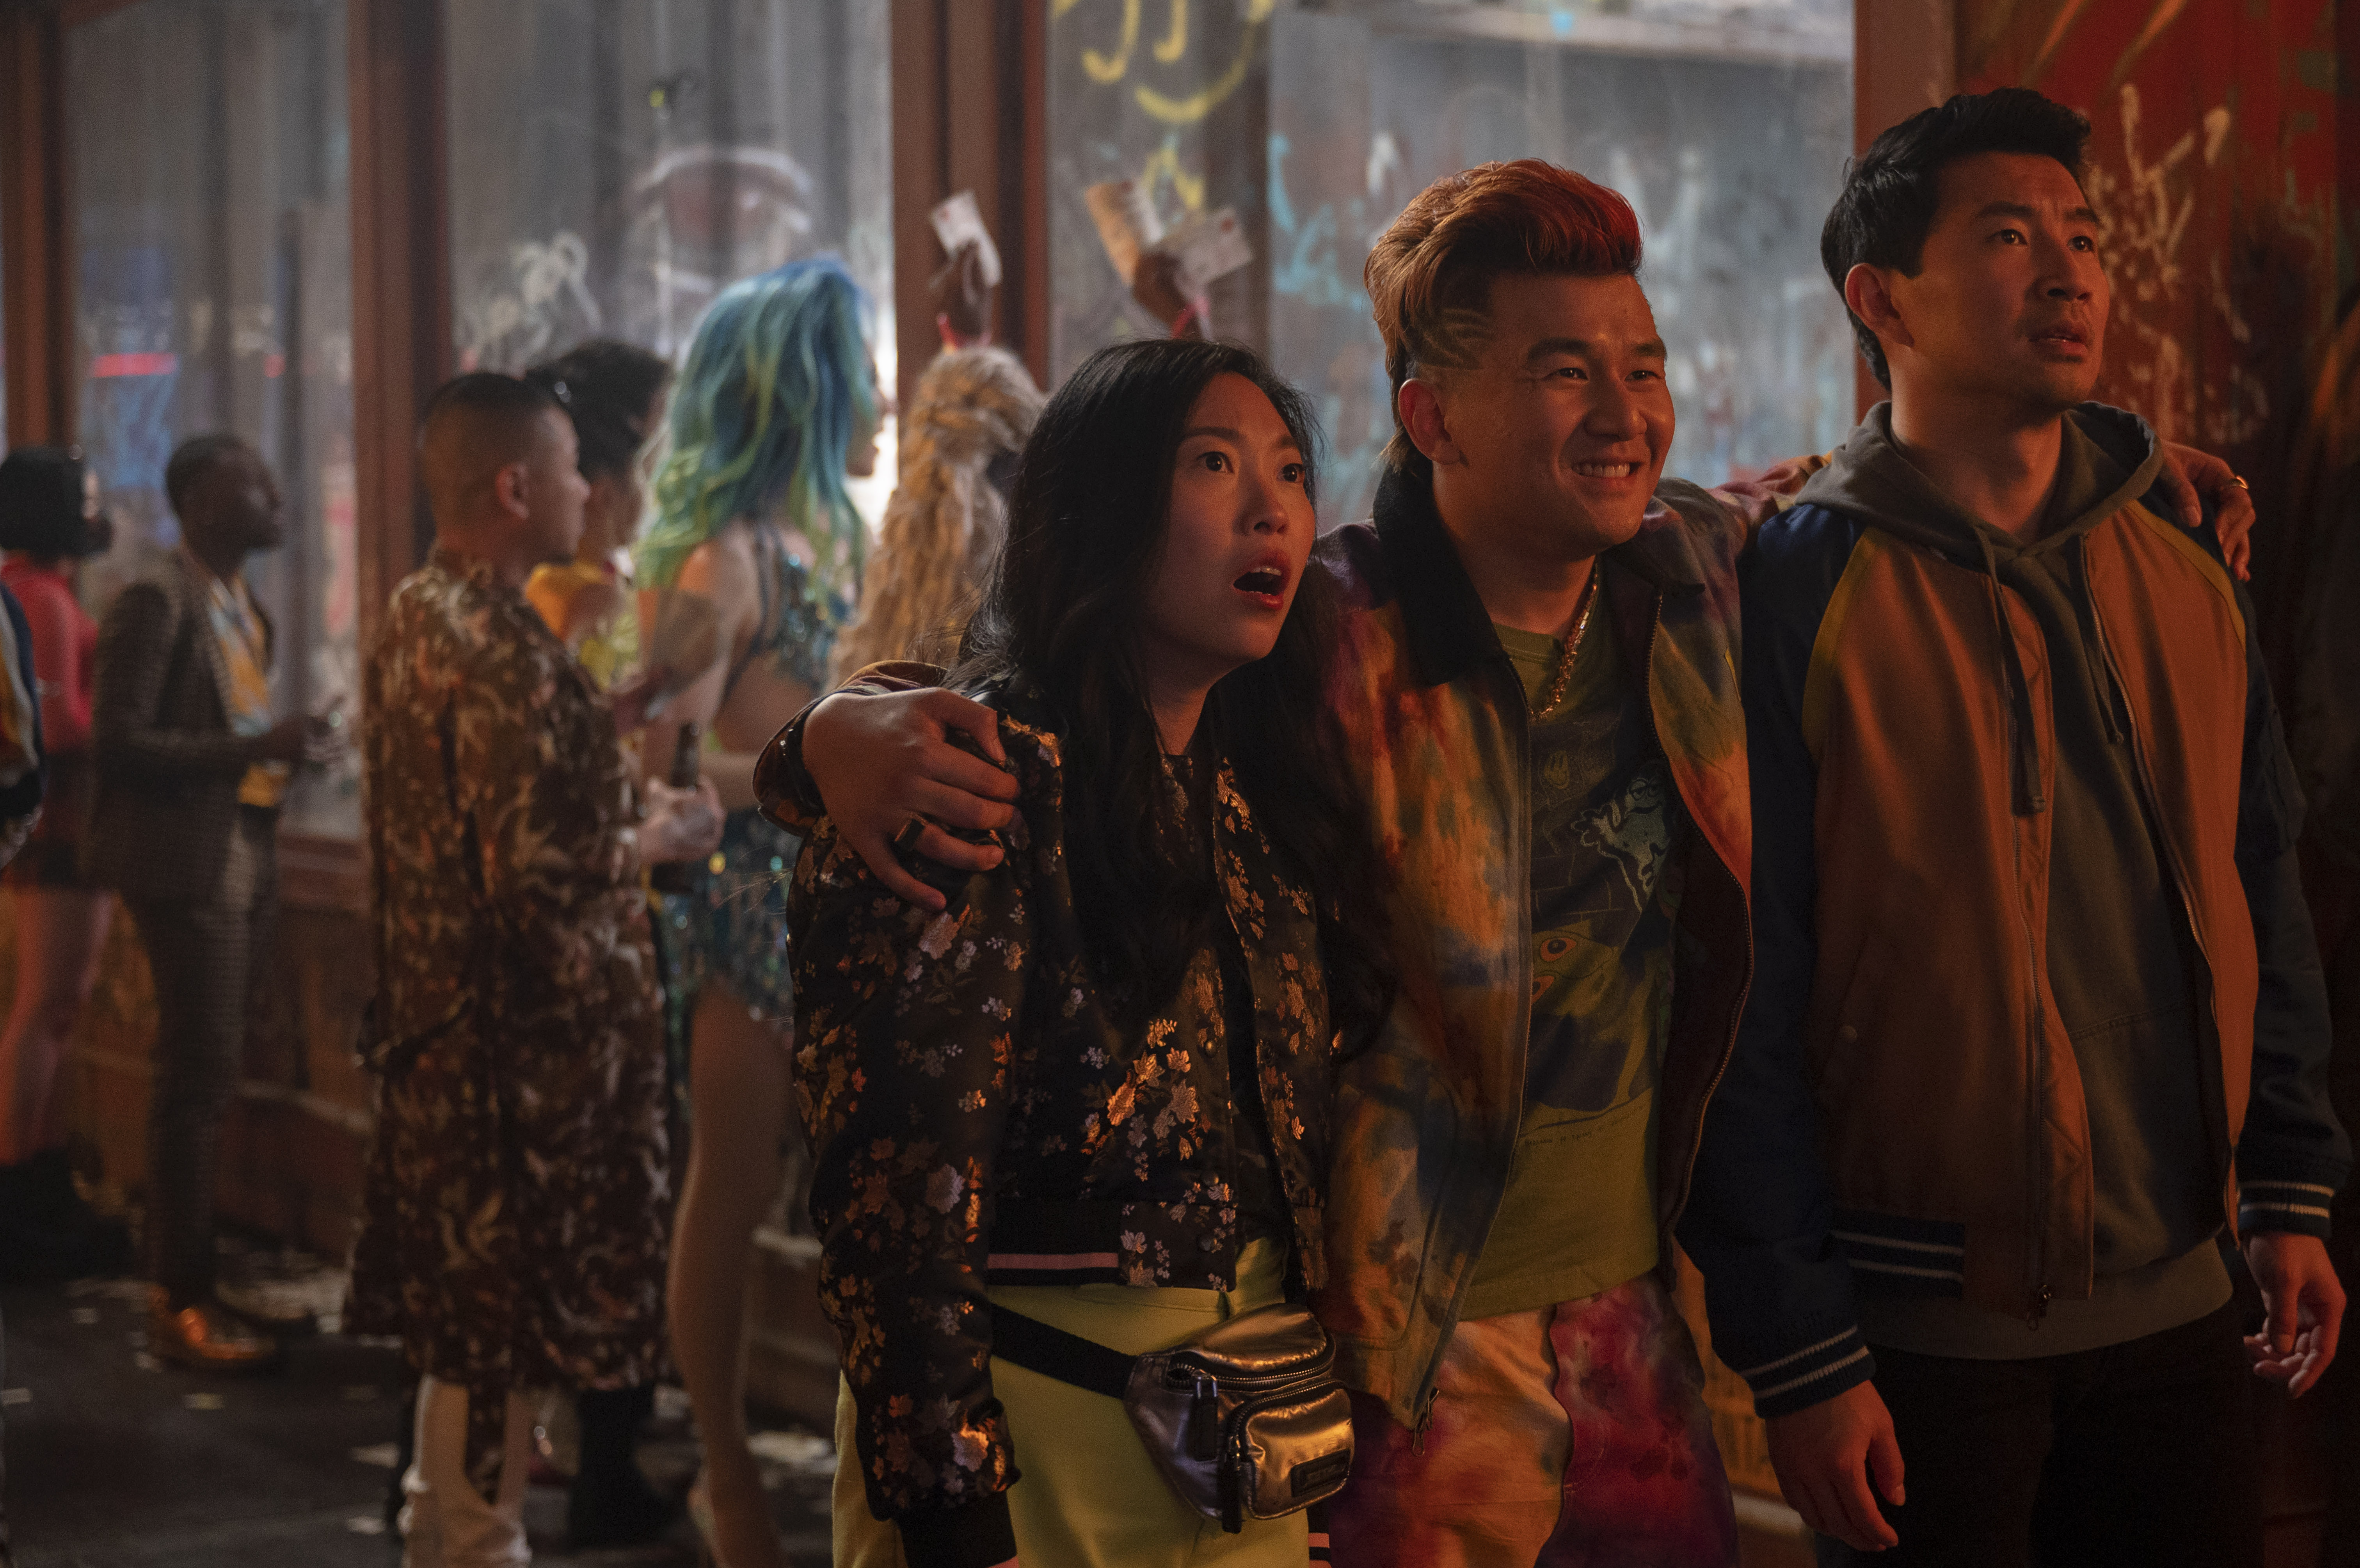 From left: Awkwafina as Katy, Ronny Chieng as Jon Jon and Simu Liu as Shang-Chi in Shang-Chi and the Legend of the Ten Rings.